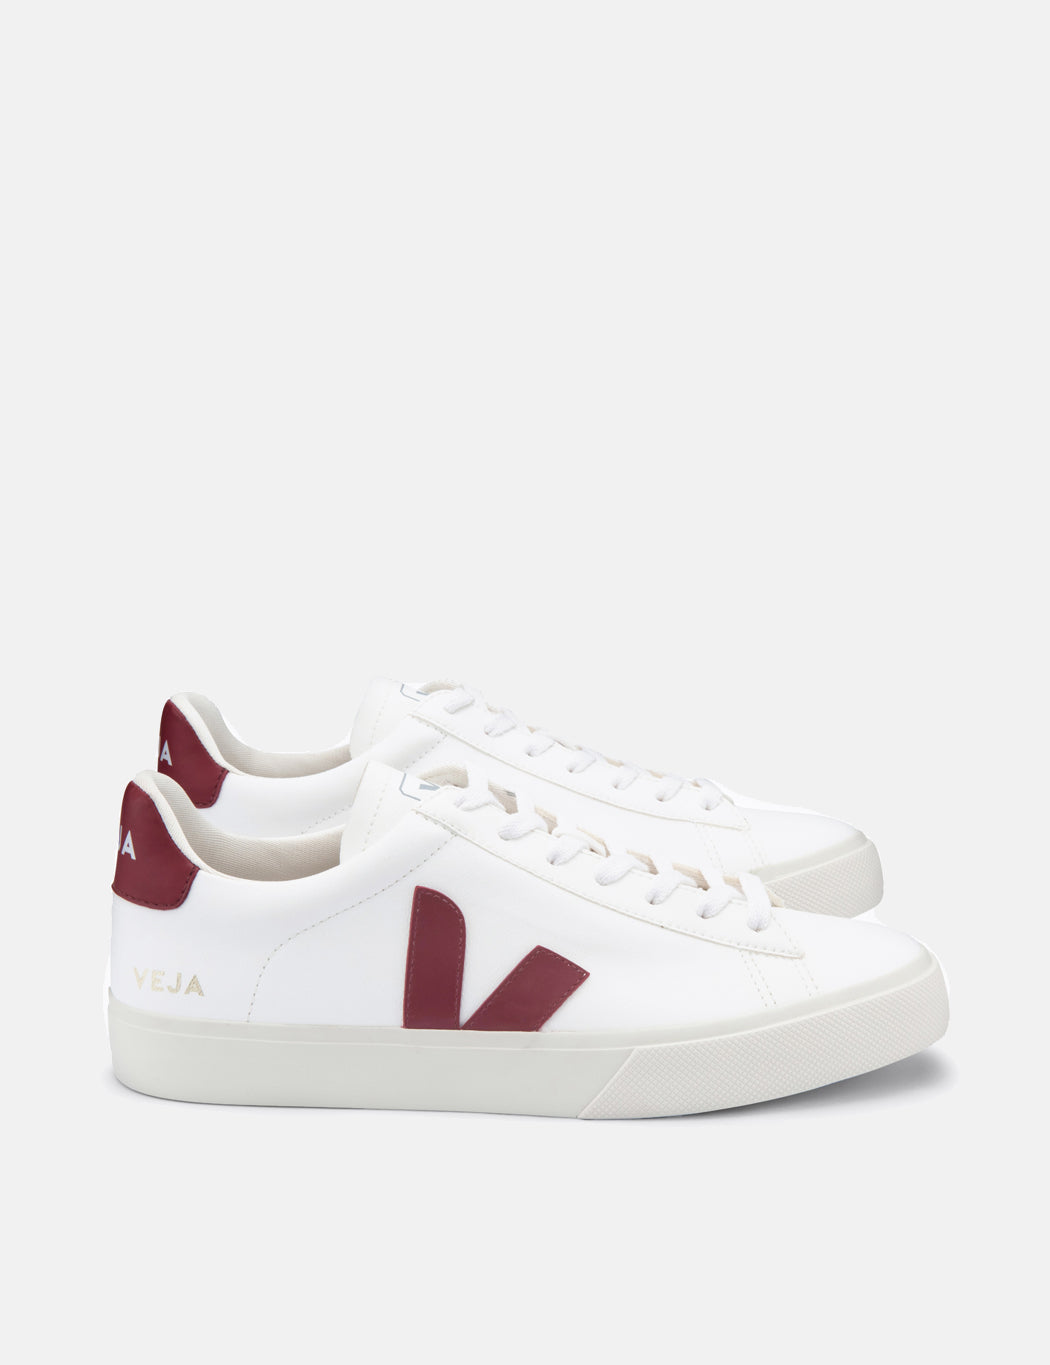 Veja Campo Trainers (Chrome Free Leather) - White/Marsala